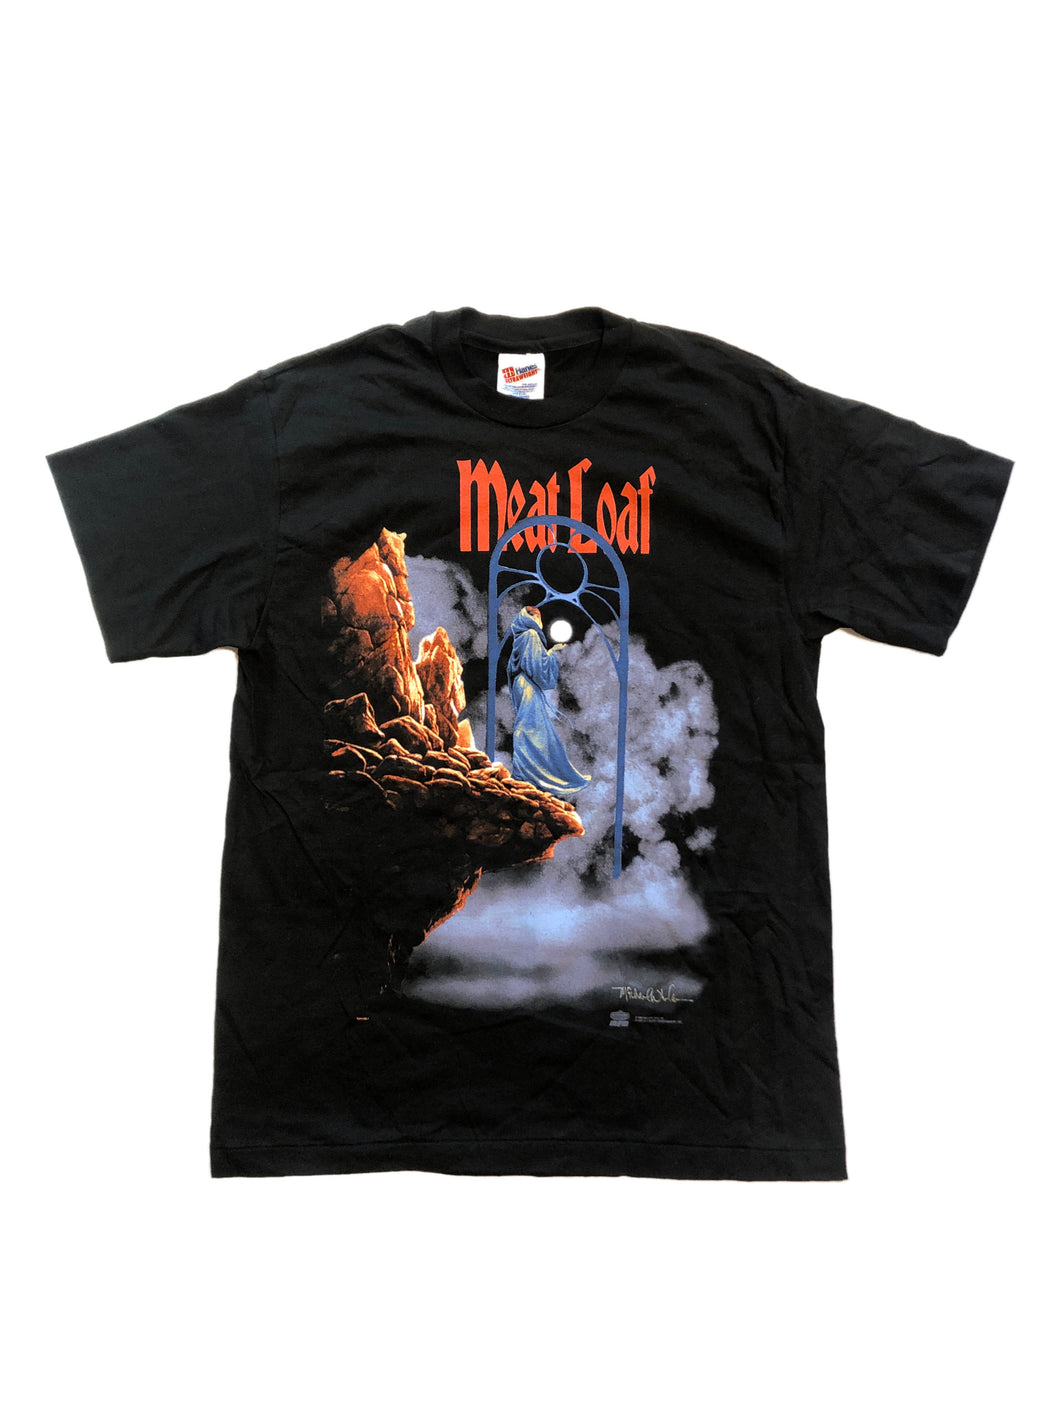 1994 Meat Loaf Tour Tee